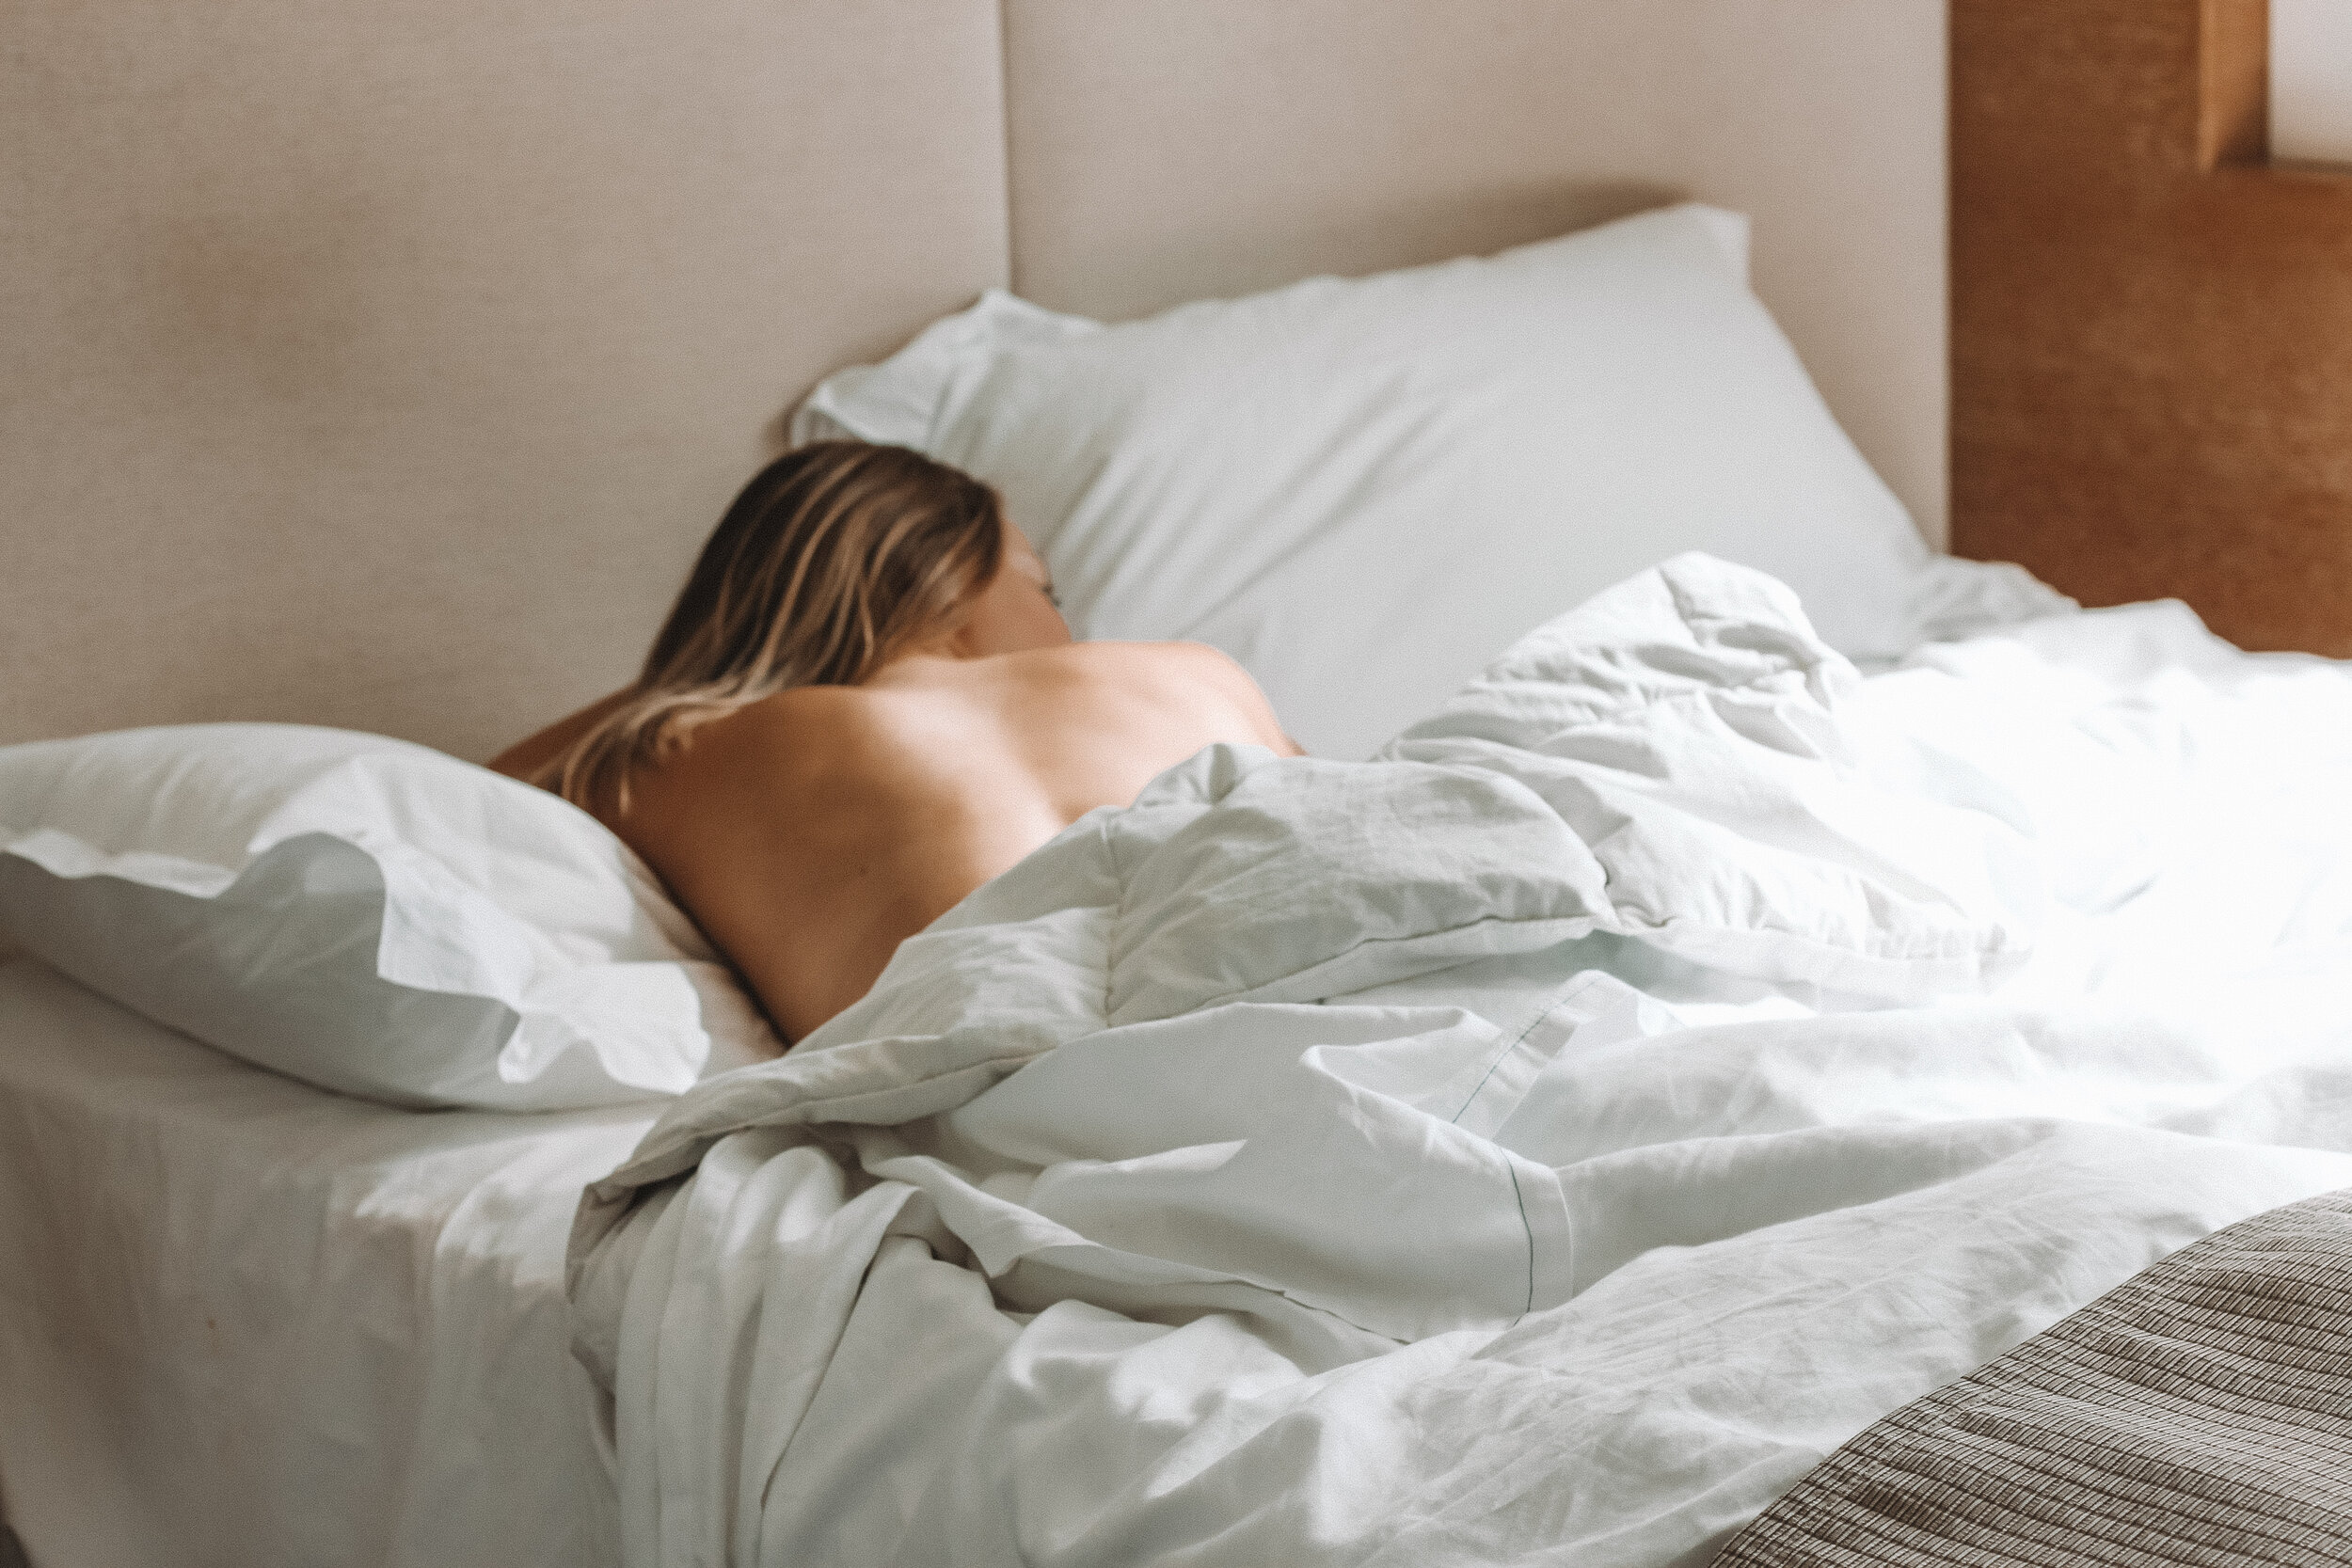 give yourself time to rest, sleep & recover - Sleep is vital to rejuvenation